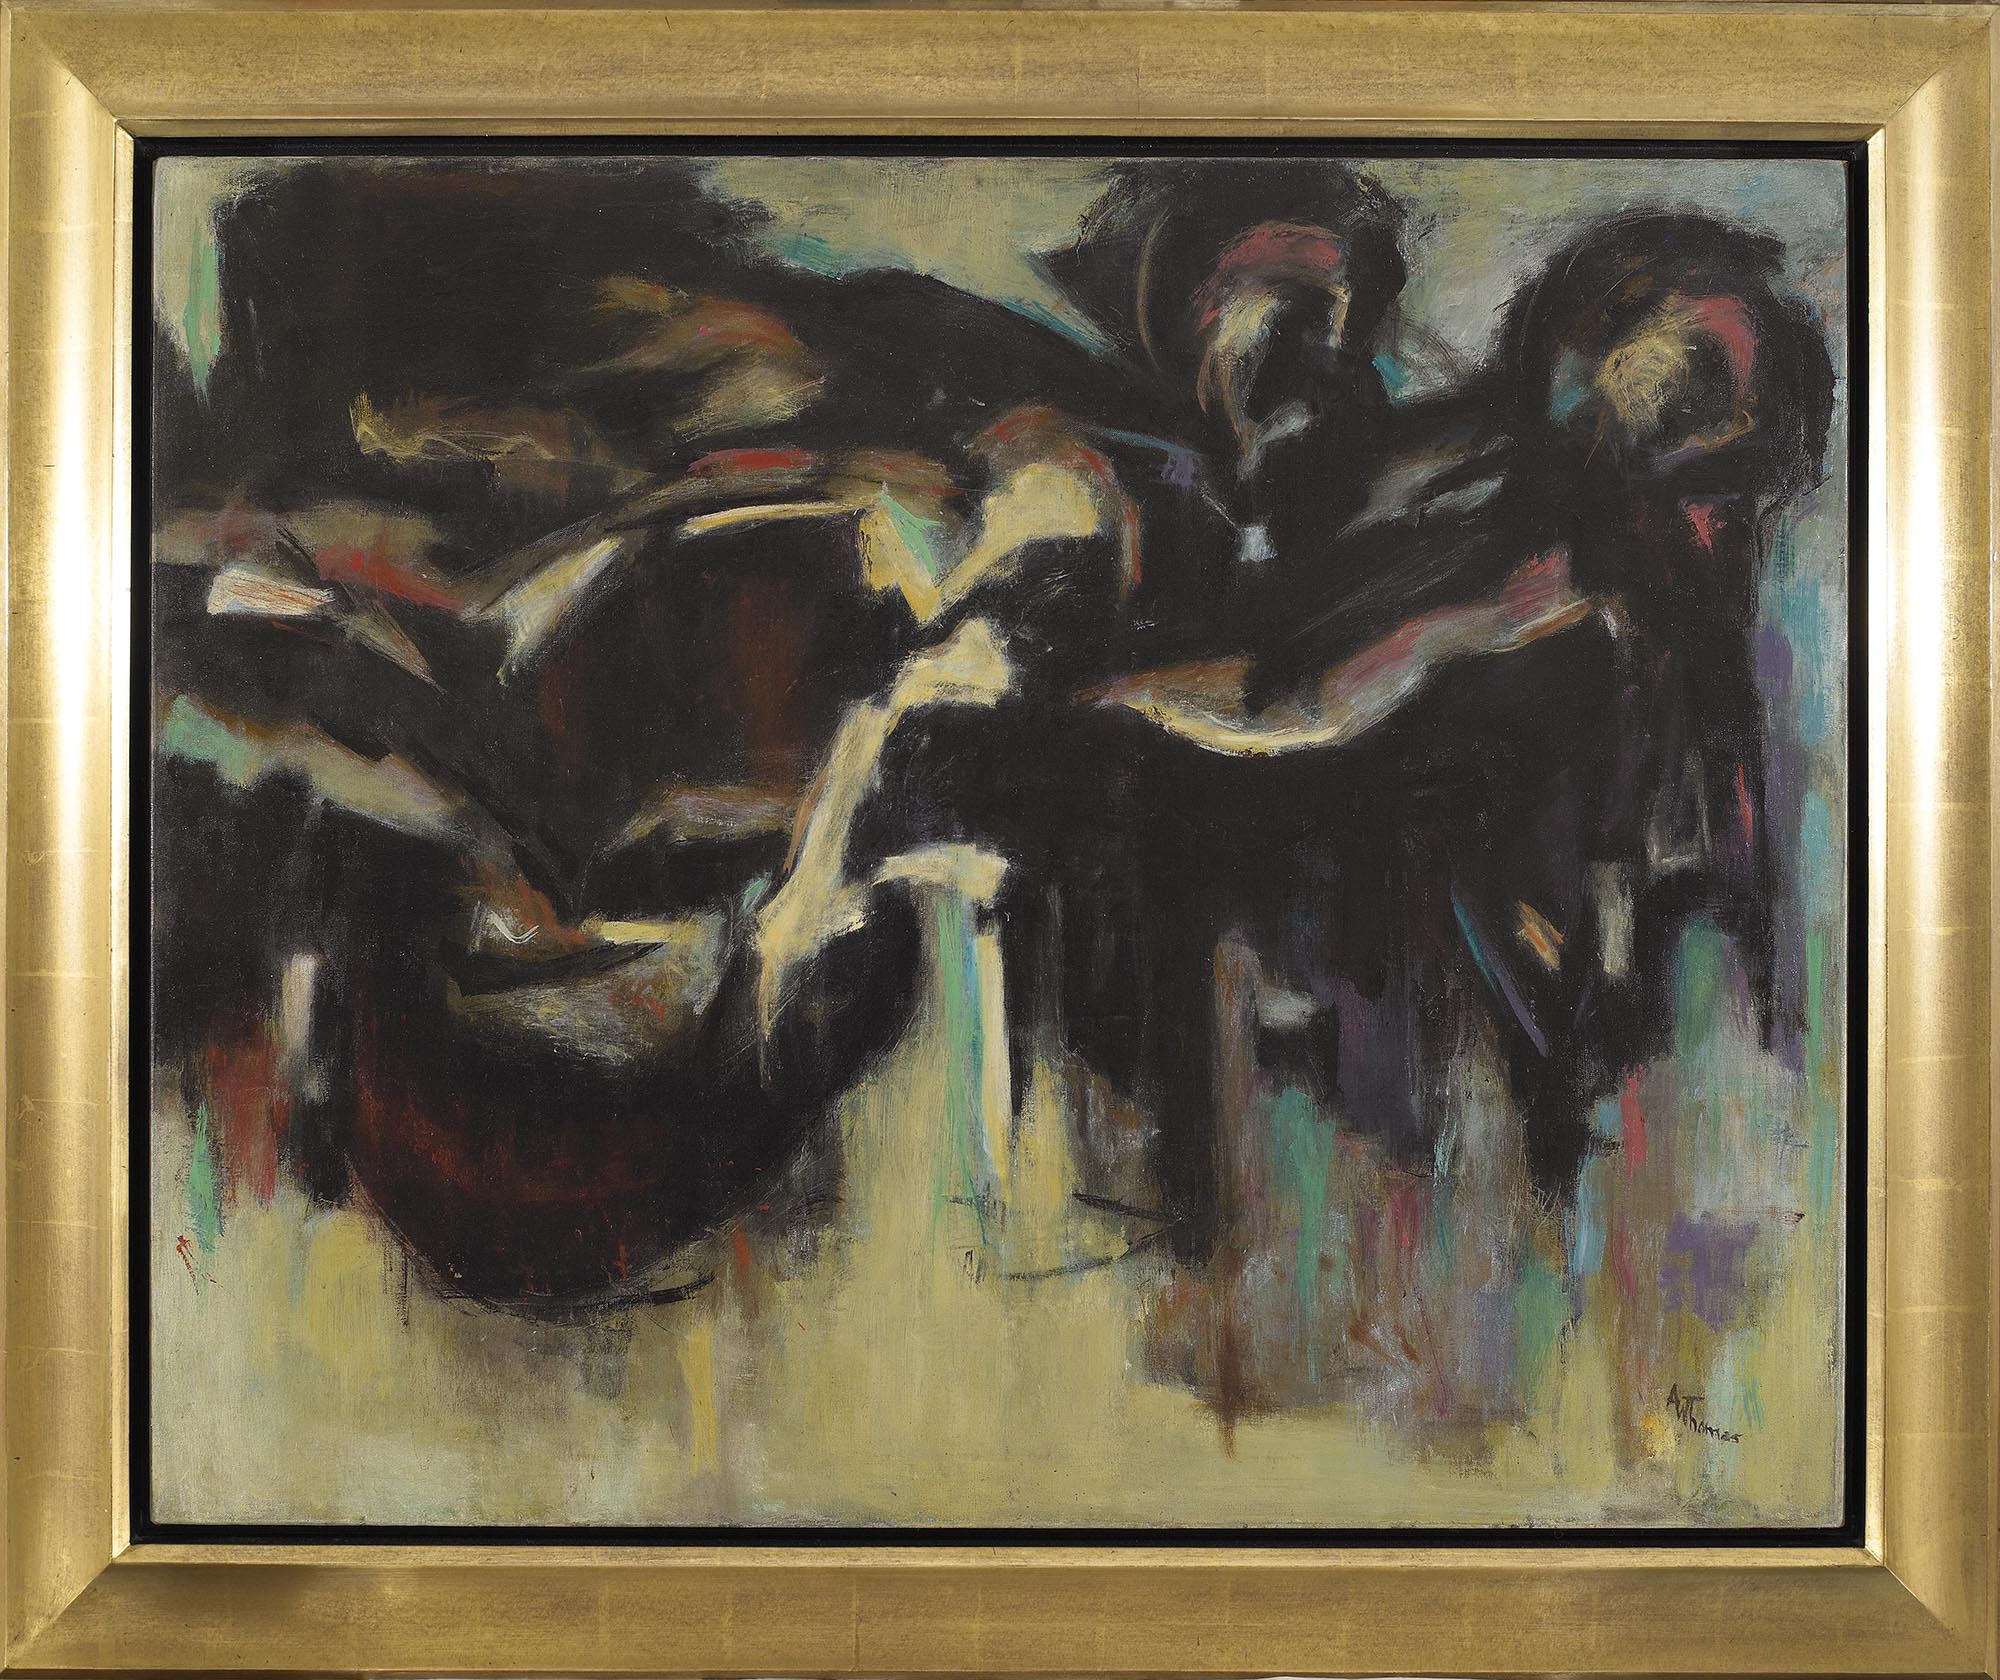 SOLD  Untitled,   c. 1958, Oil on Canvas, 32 1/4 x 40 1/4 inches